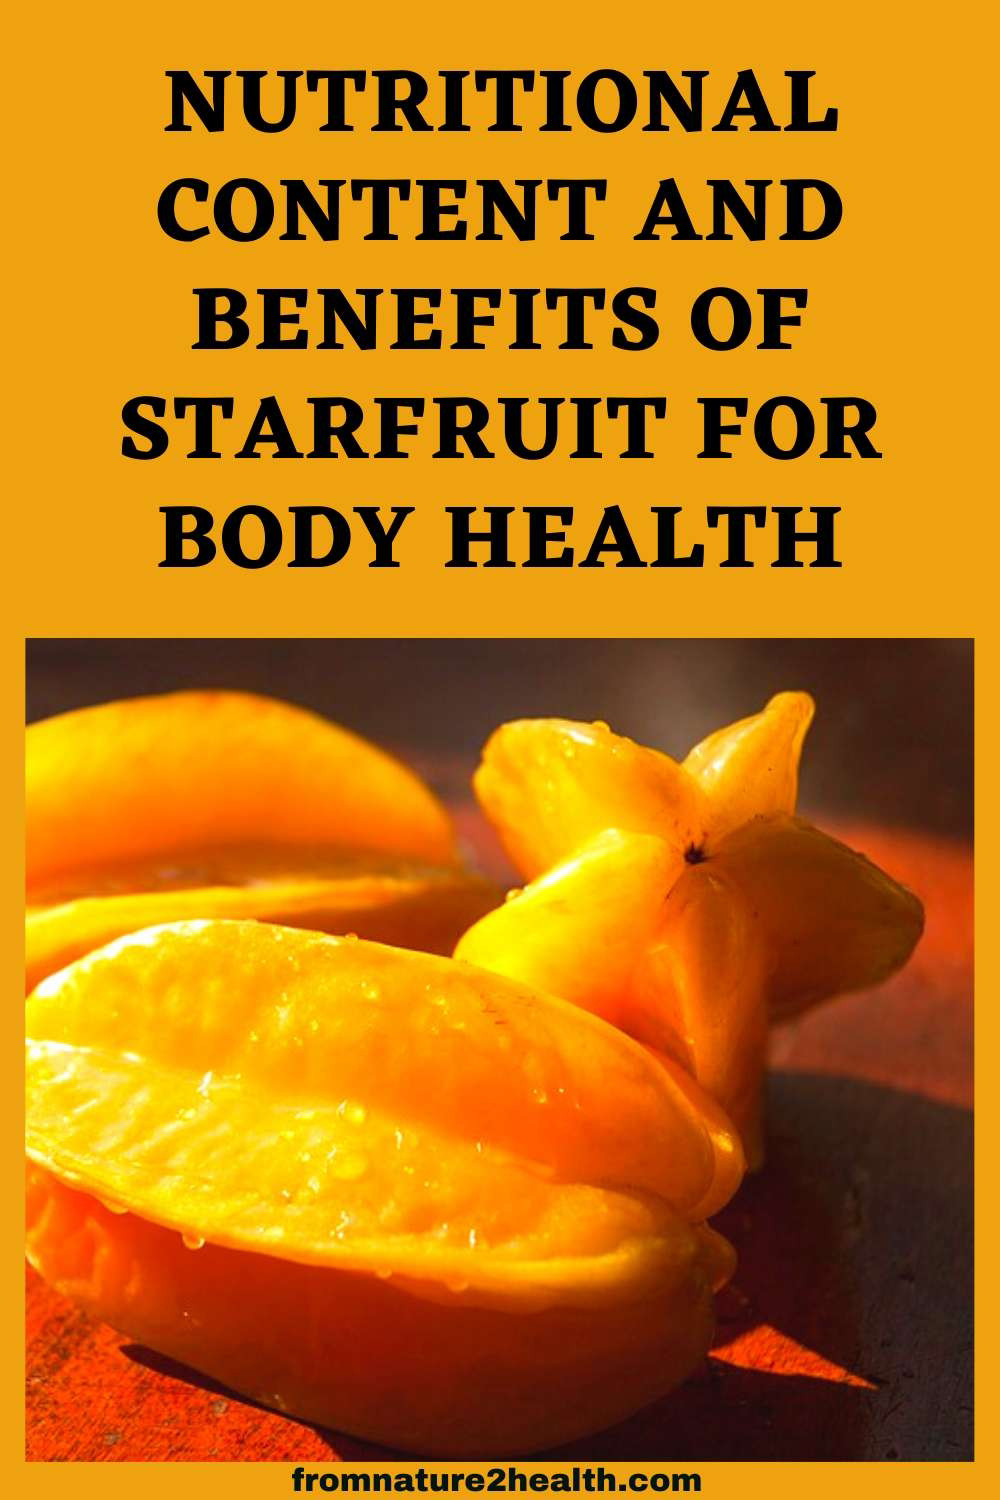 Nutritional Content and Benefits of Starfruit for Body Health